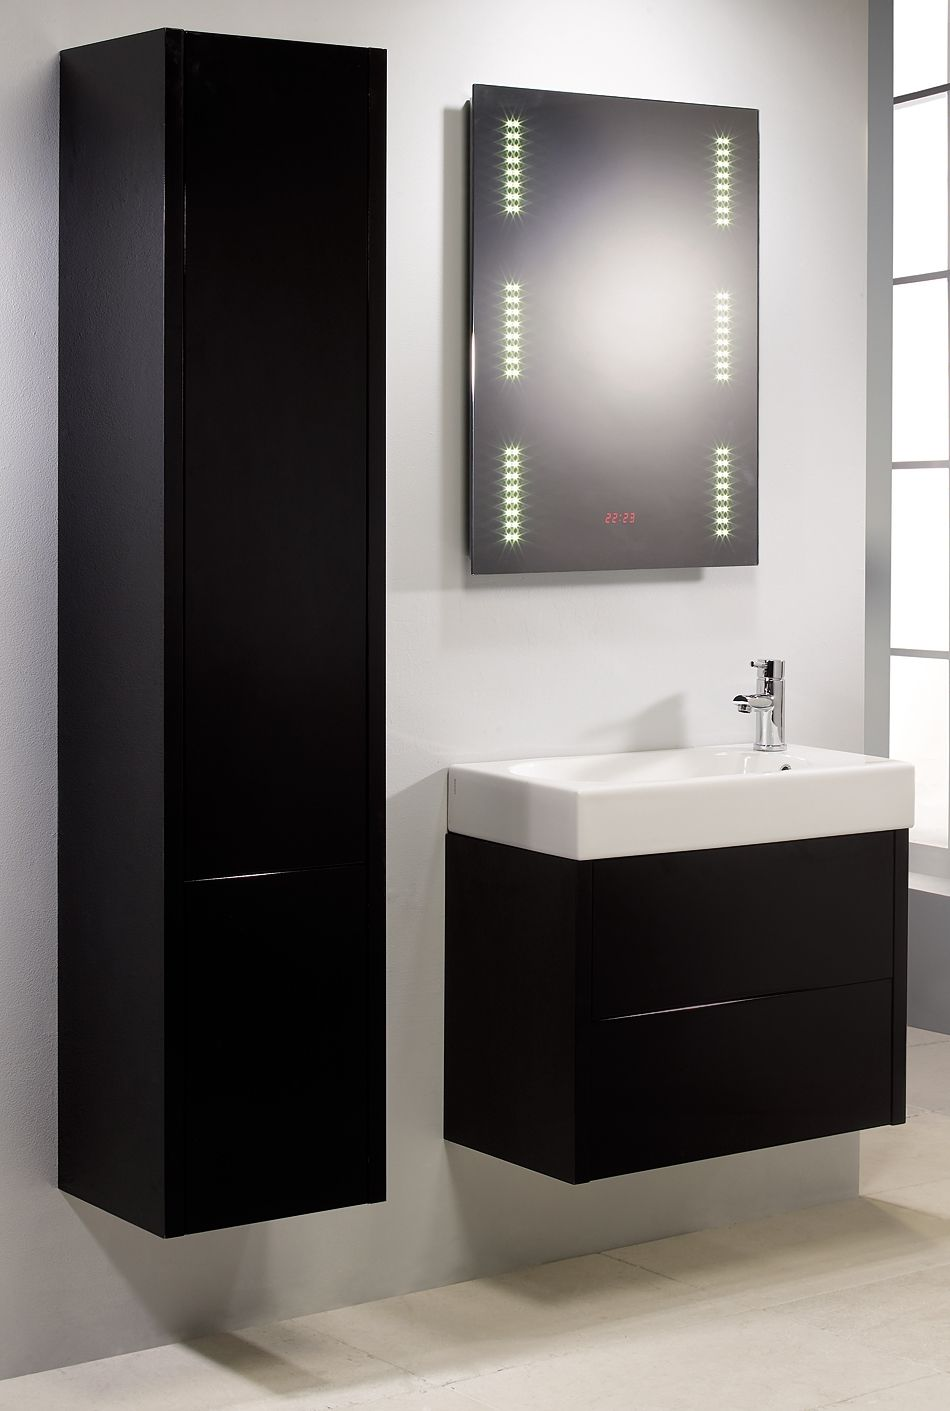 Bathroom Black Rectangle Vanity With White Sink Plus Light Mirror For Measurements 950 X 1411 Black Cabinets Bathroom Black Bathroom Tall Bathroom Storage